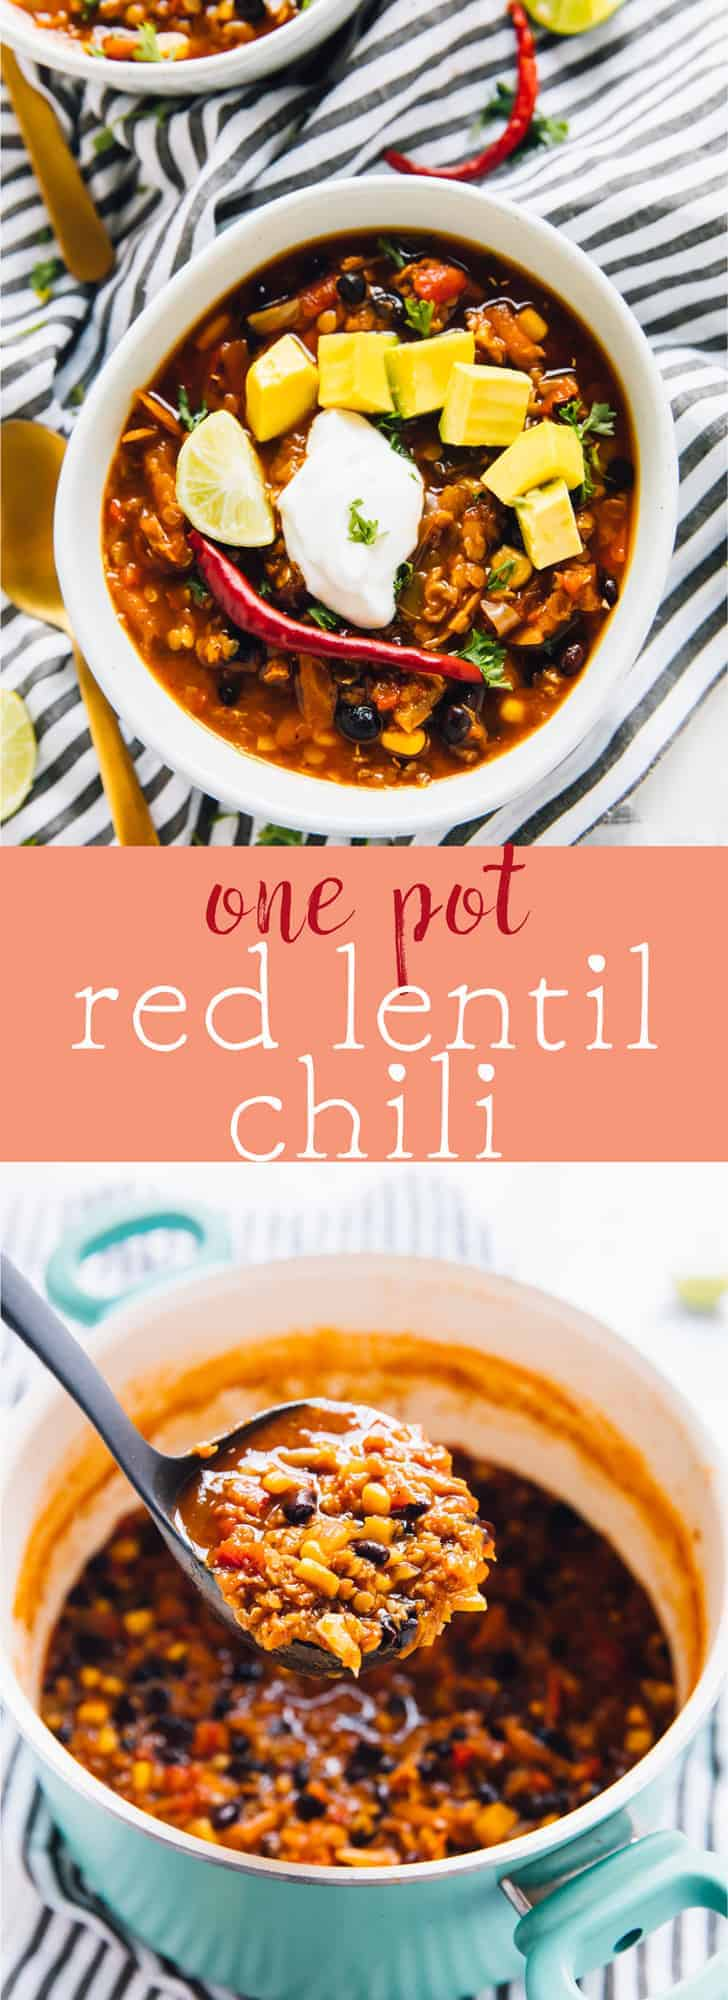 This One Pot Red Lentil Chili takes only ten minutes of prep! It makes an absolutely delicious vegan chili and it incredibly easy to whip up for you and your family! via https://jessicainthekitchen.com